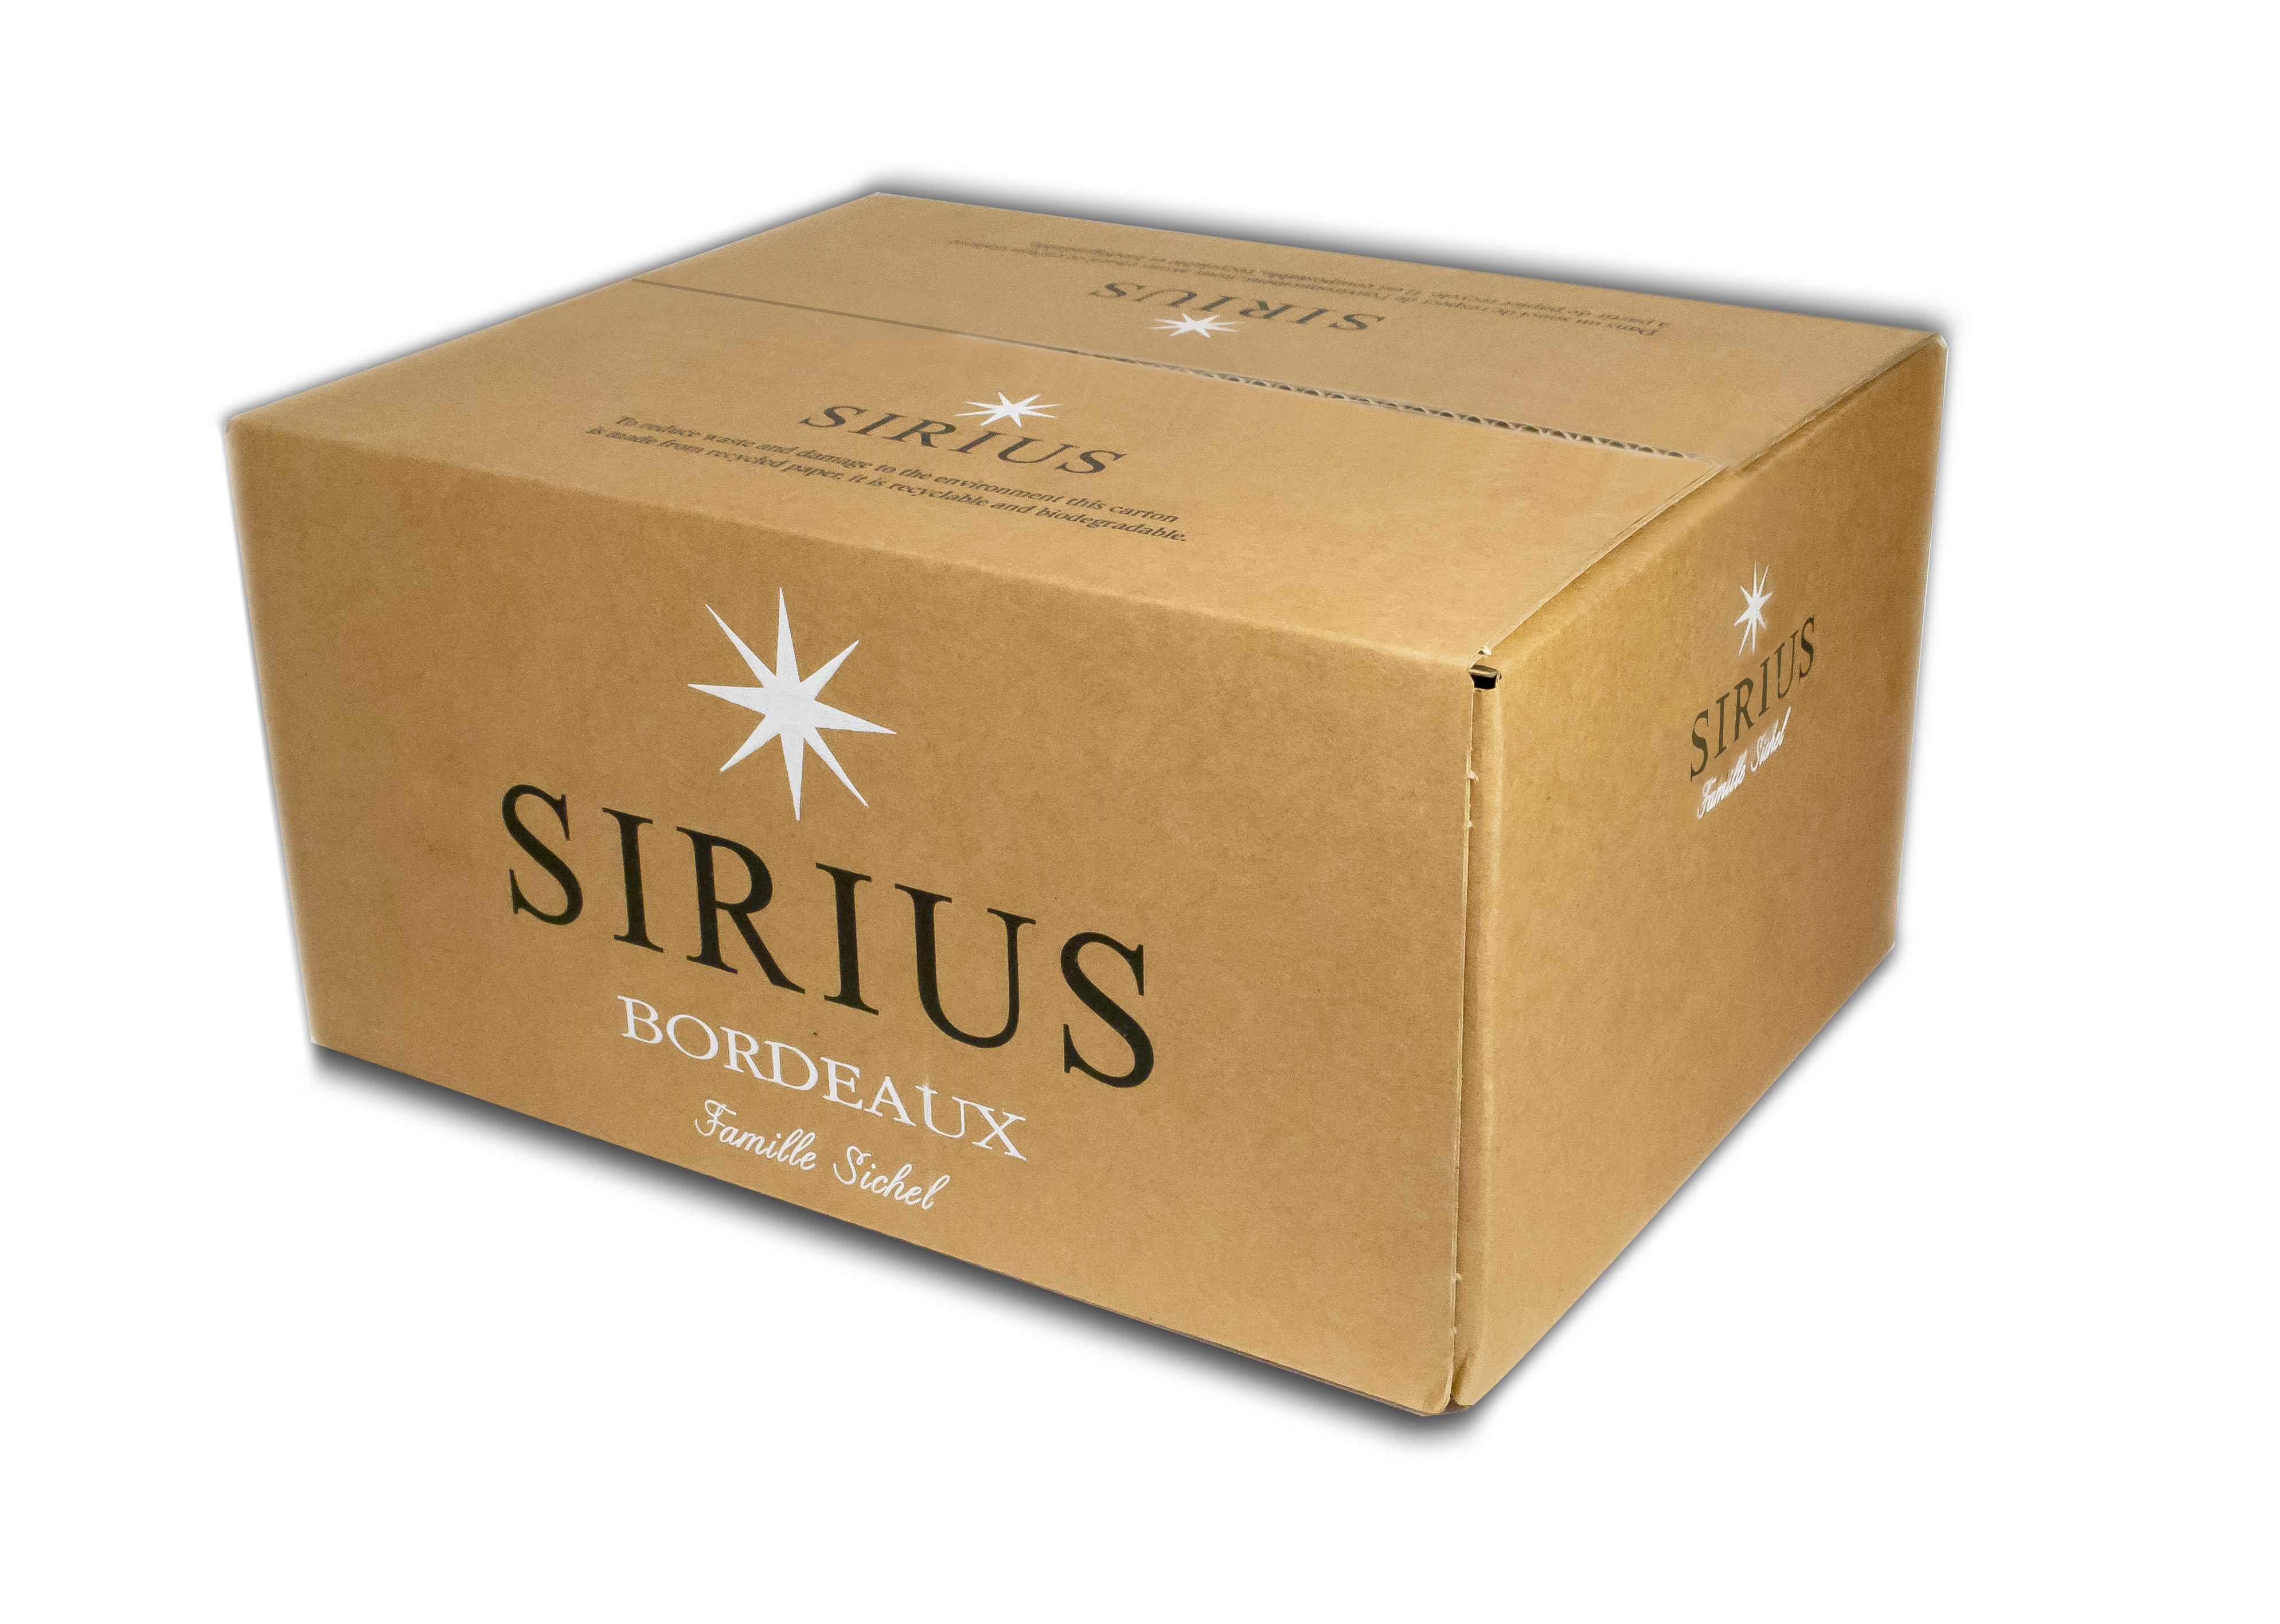 Sirius AOC Bordeaux White 2019